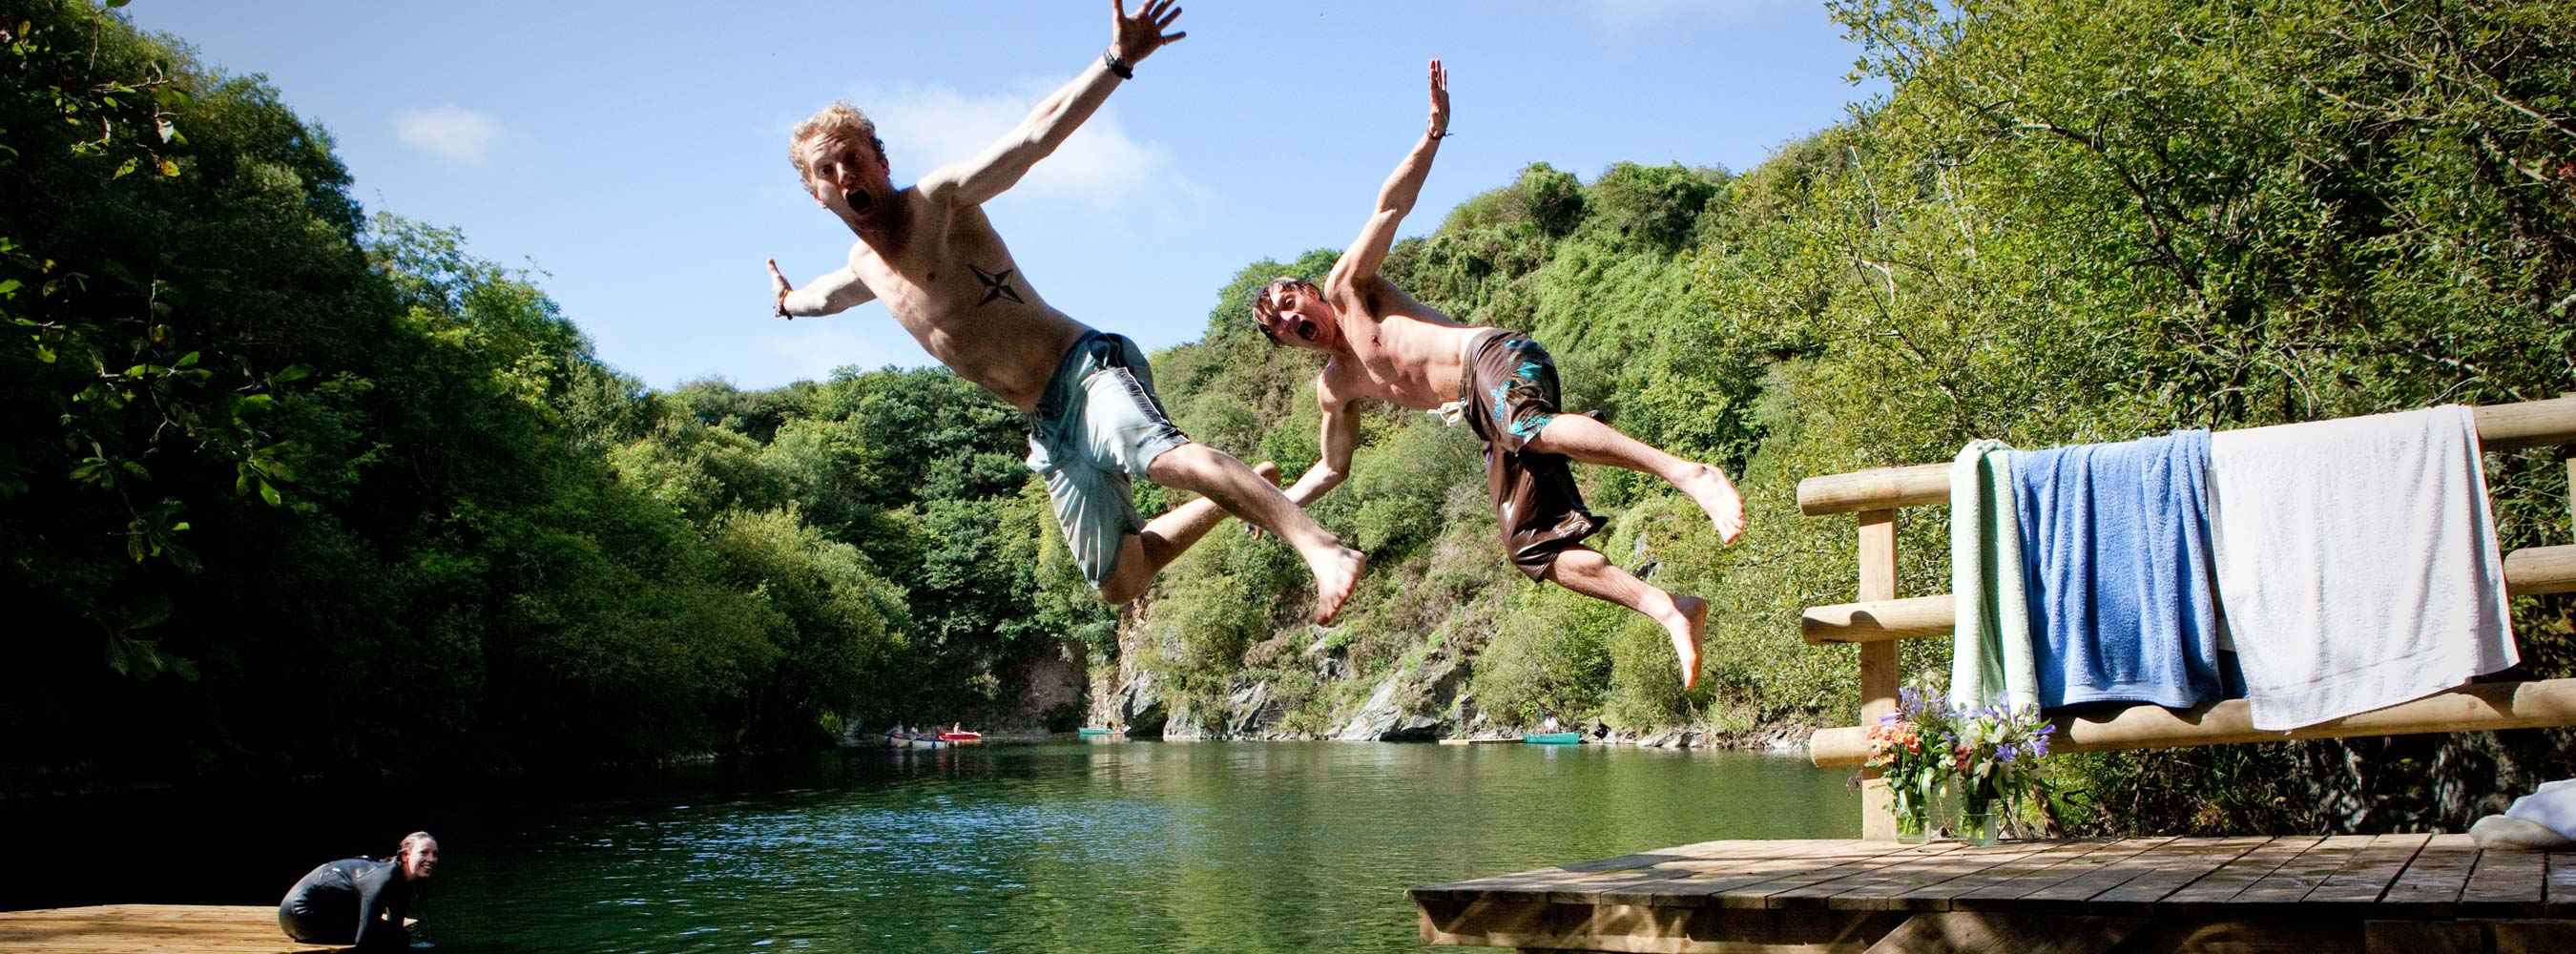 Guests Jumping in the Lake